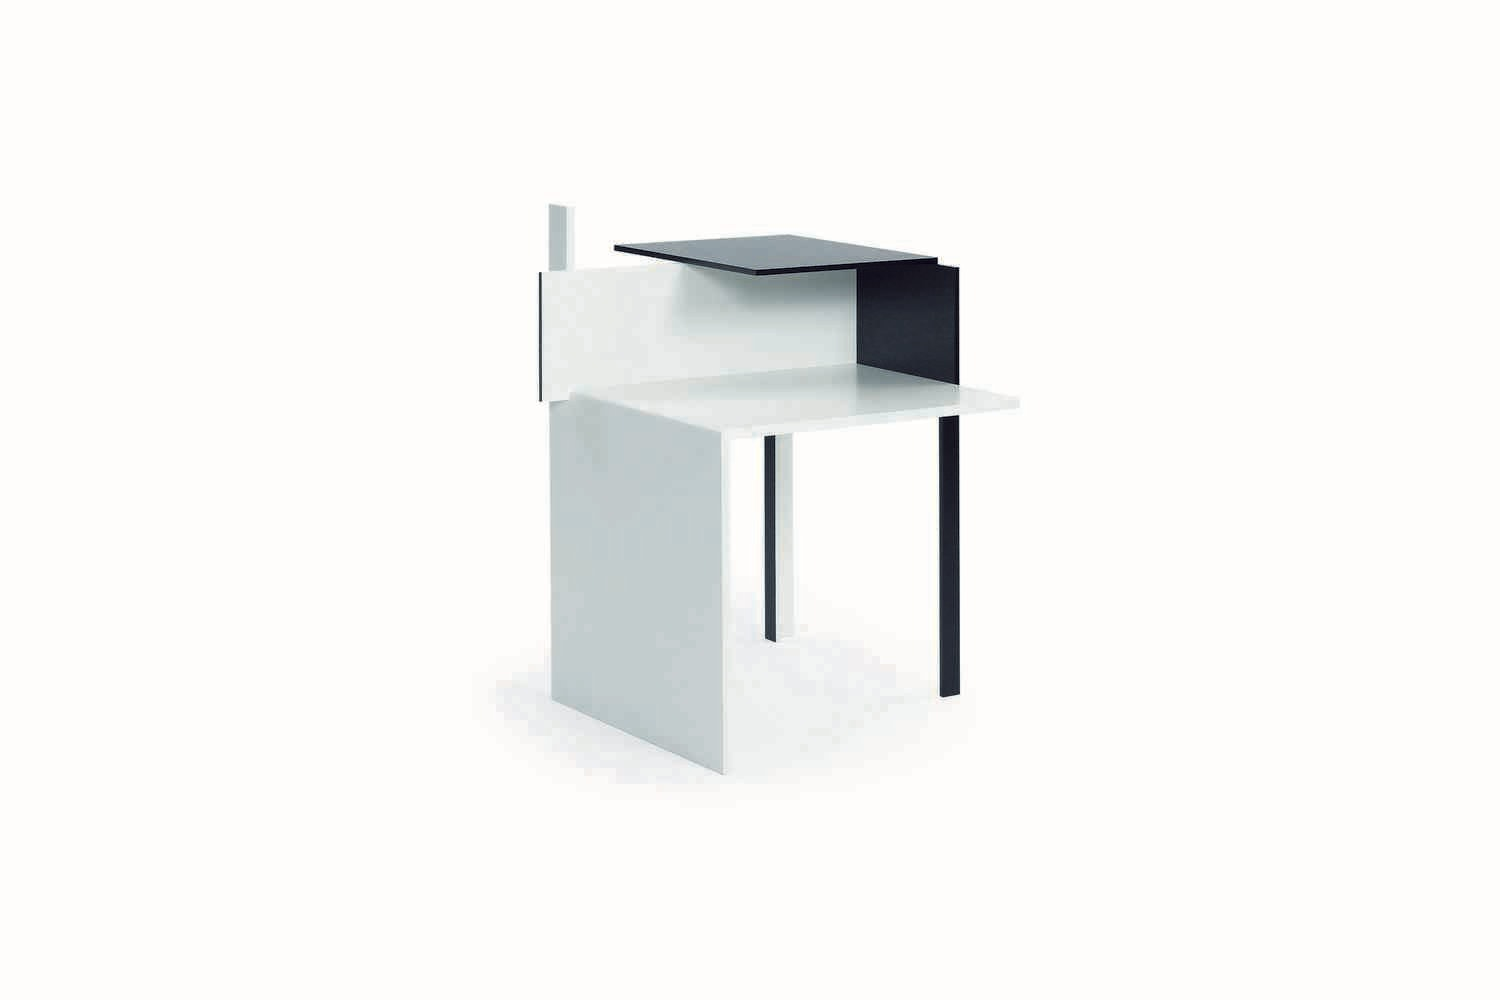 De Stijl by Eileen Gray for ClassiCon